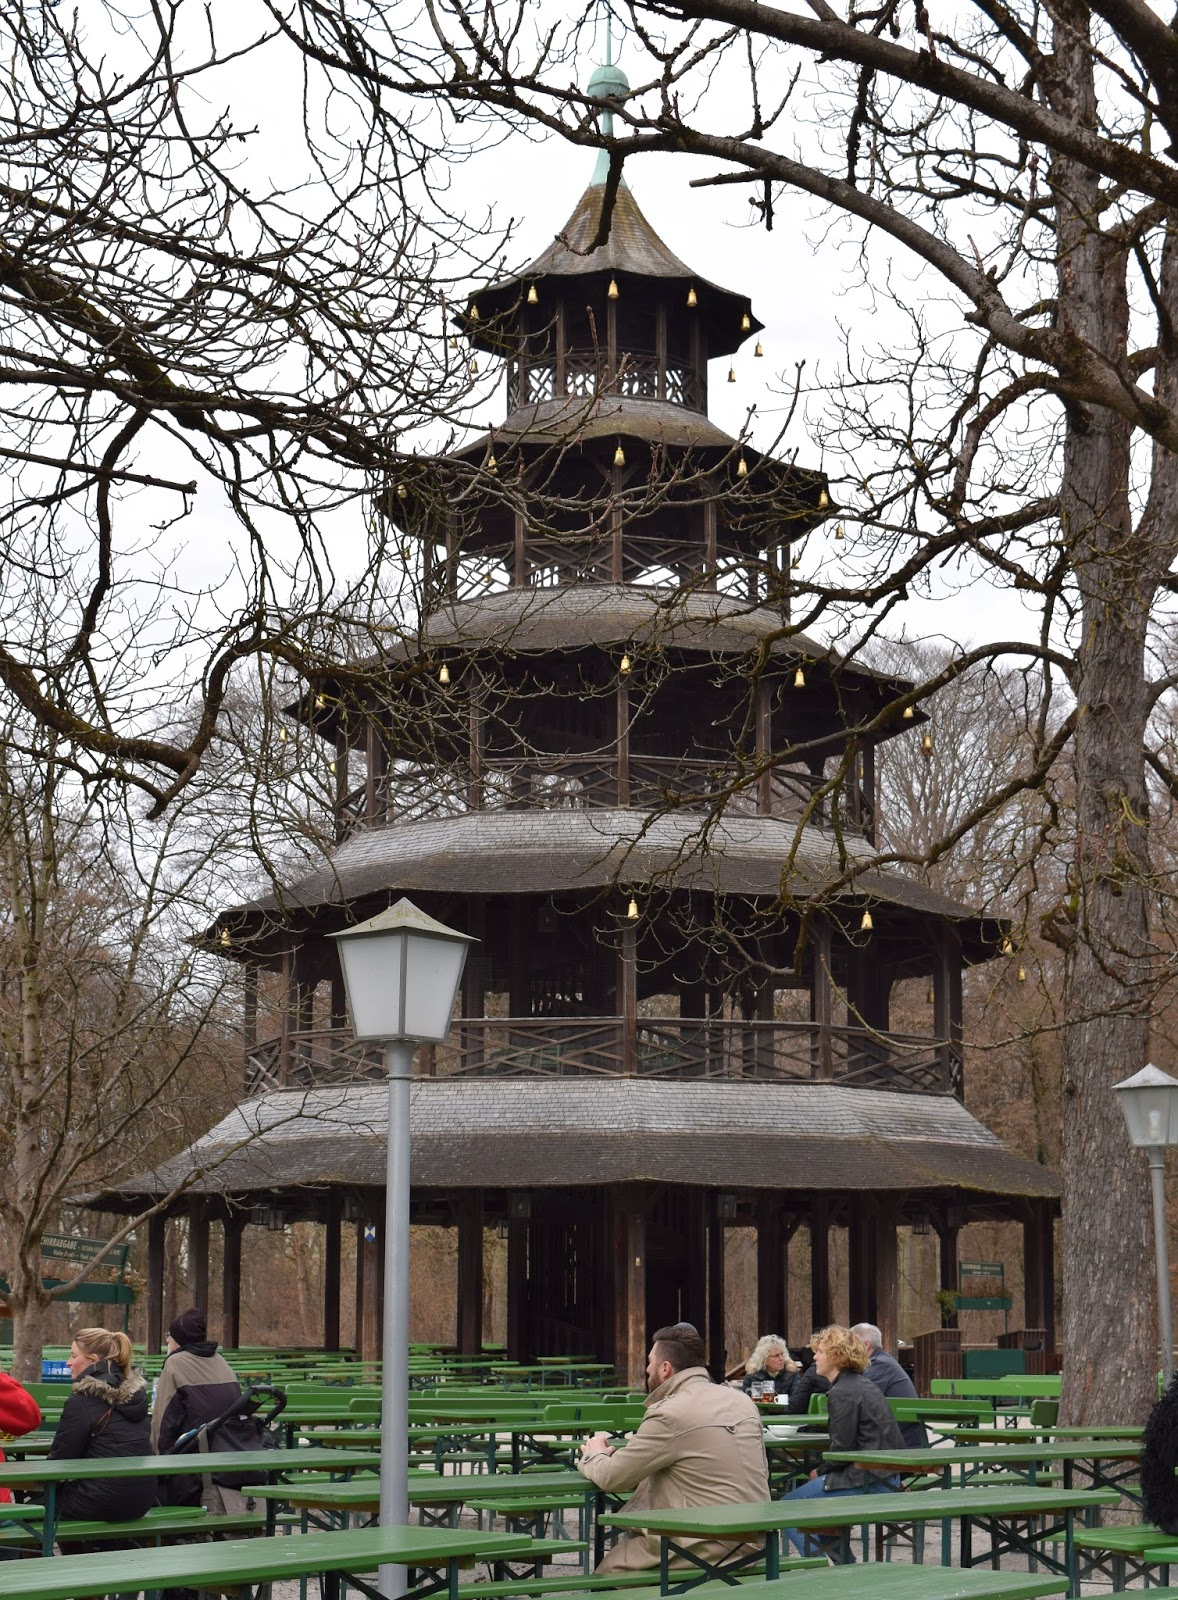 rambling traveler chinesischer turm biergarten in englischer garten. Black Bedroom Furniture Sets. Home Design Ideas